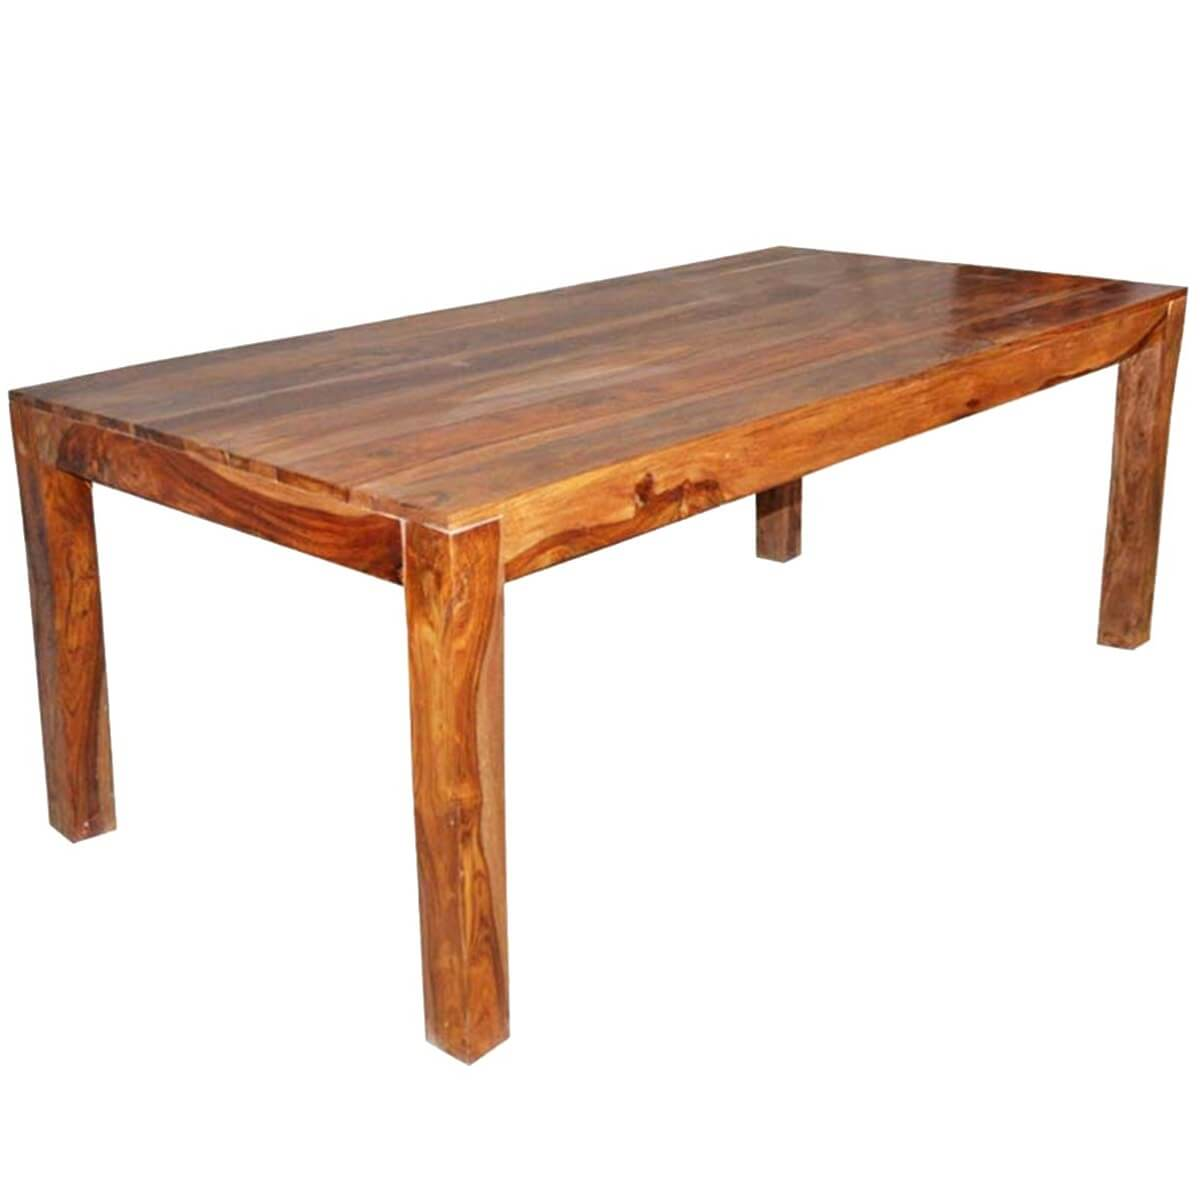 Indian rosewood dining table kluane simplicity contemporary solid wood dining table sheesham - India dining table ...